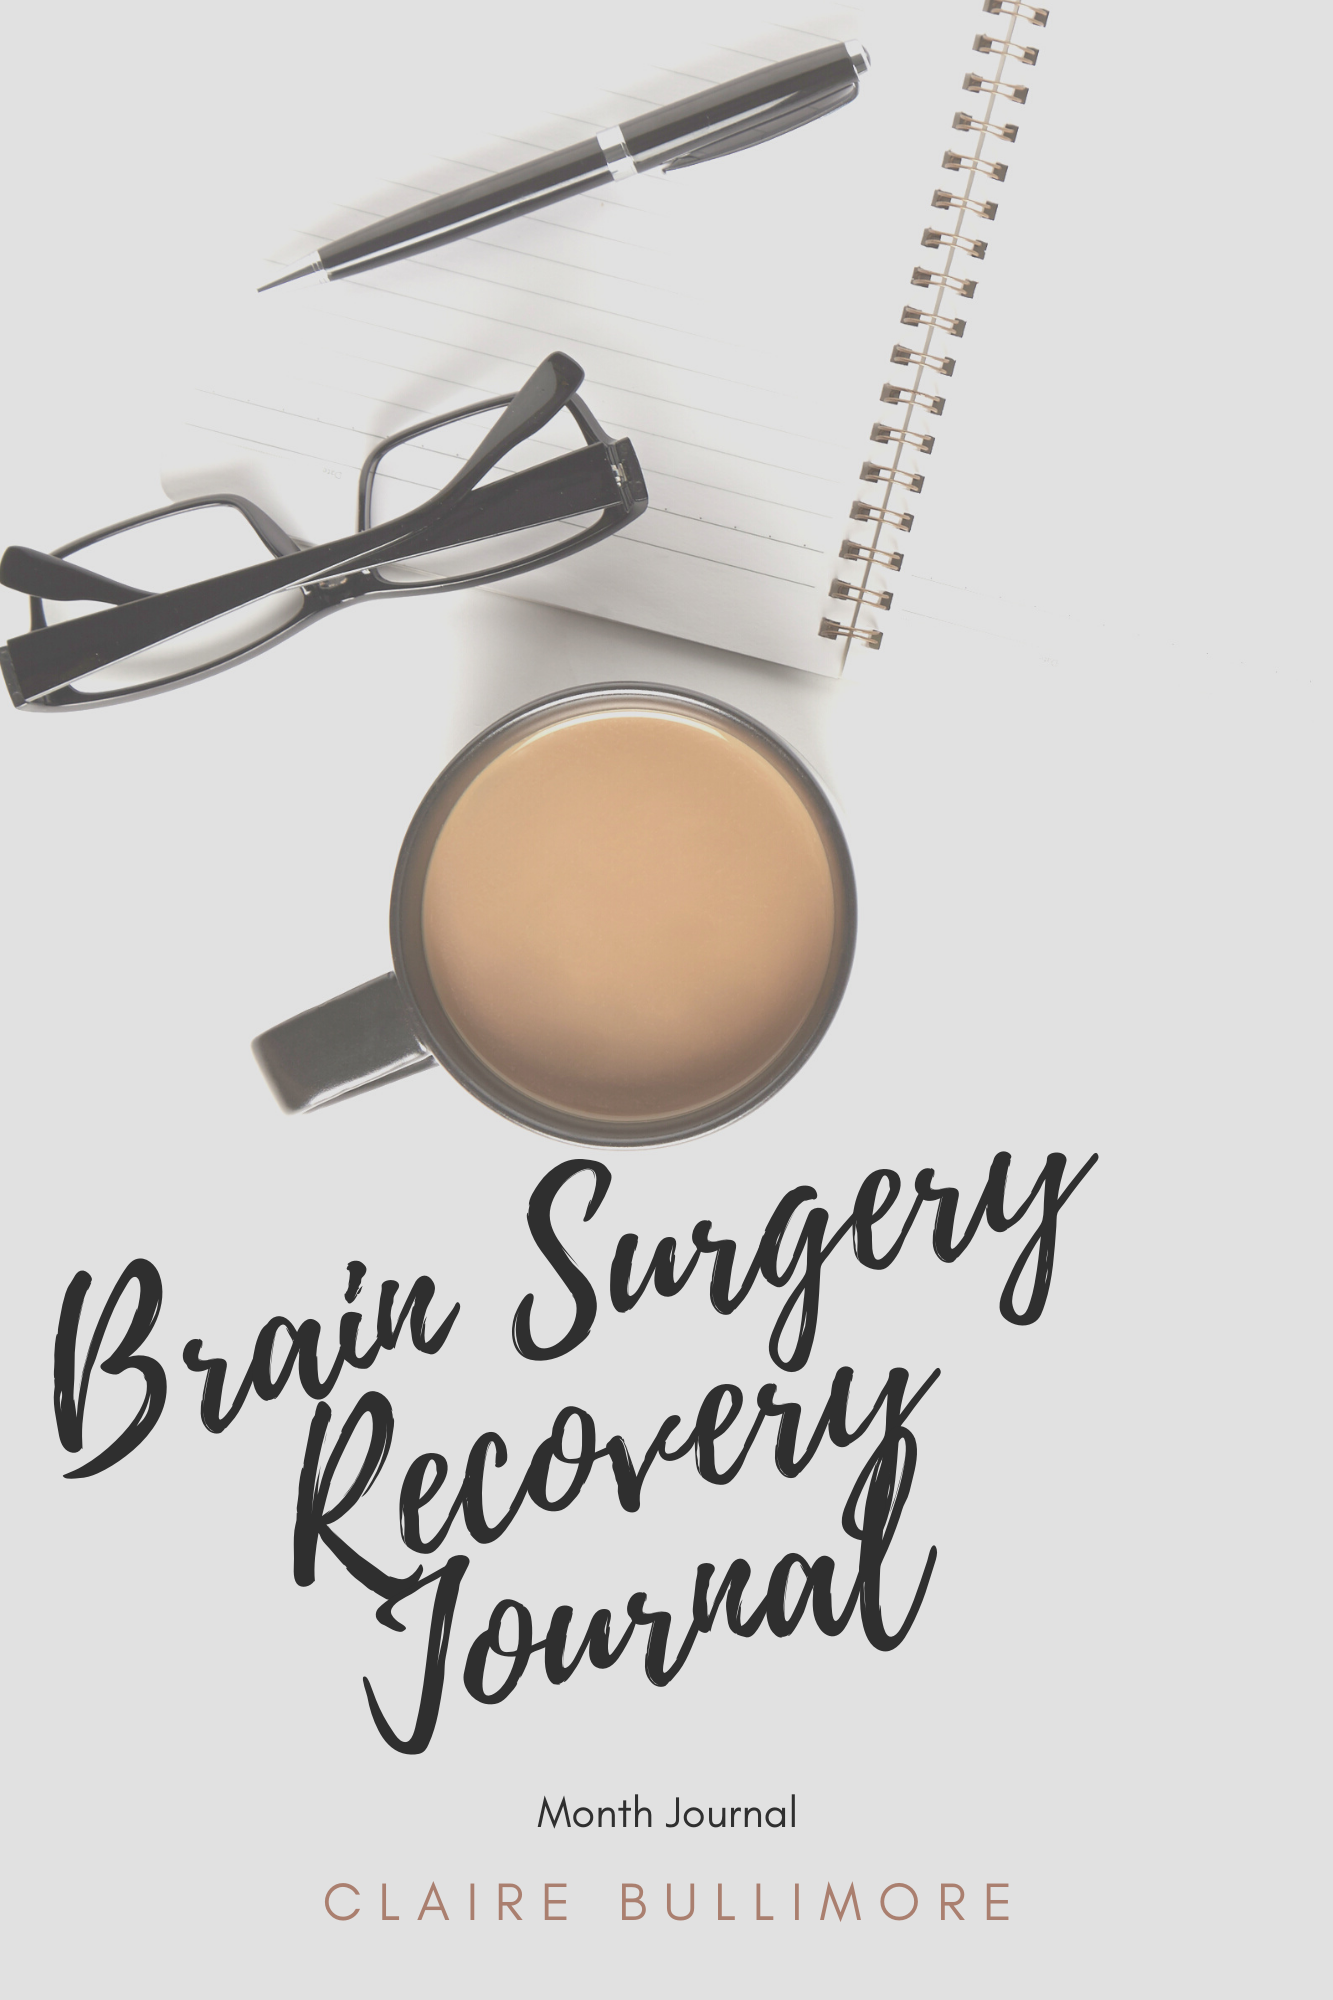 Brain Surgery Recovery Journal